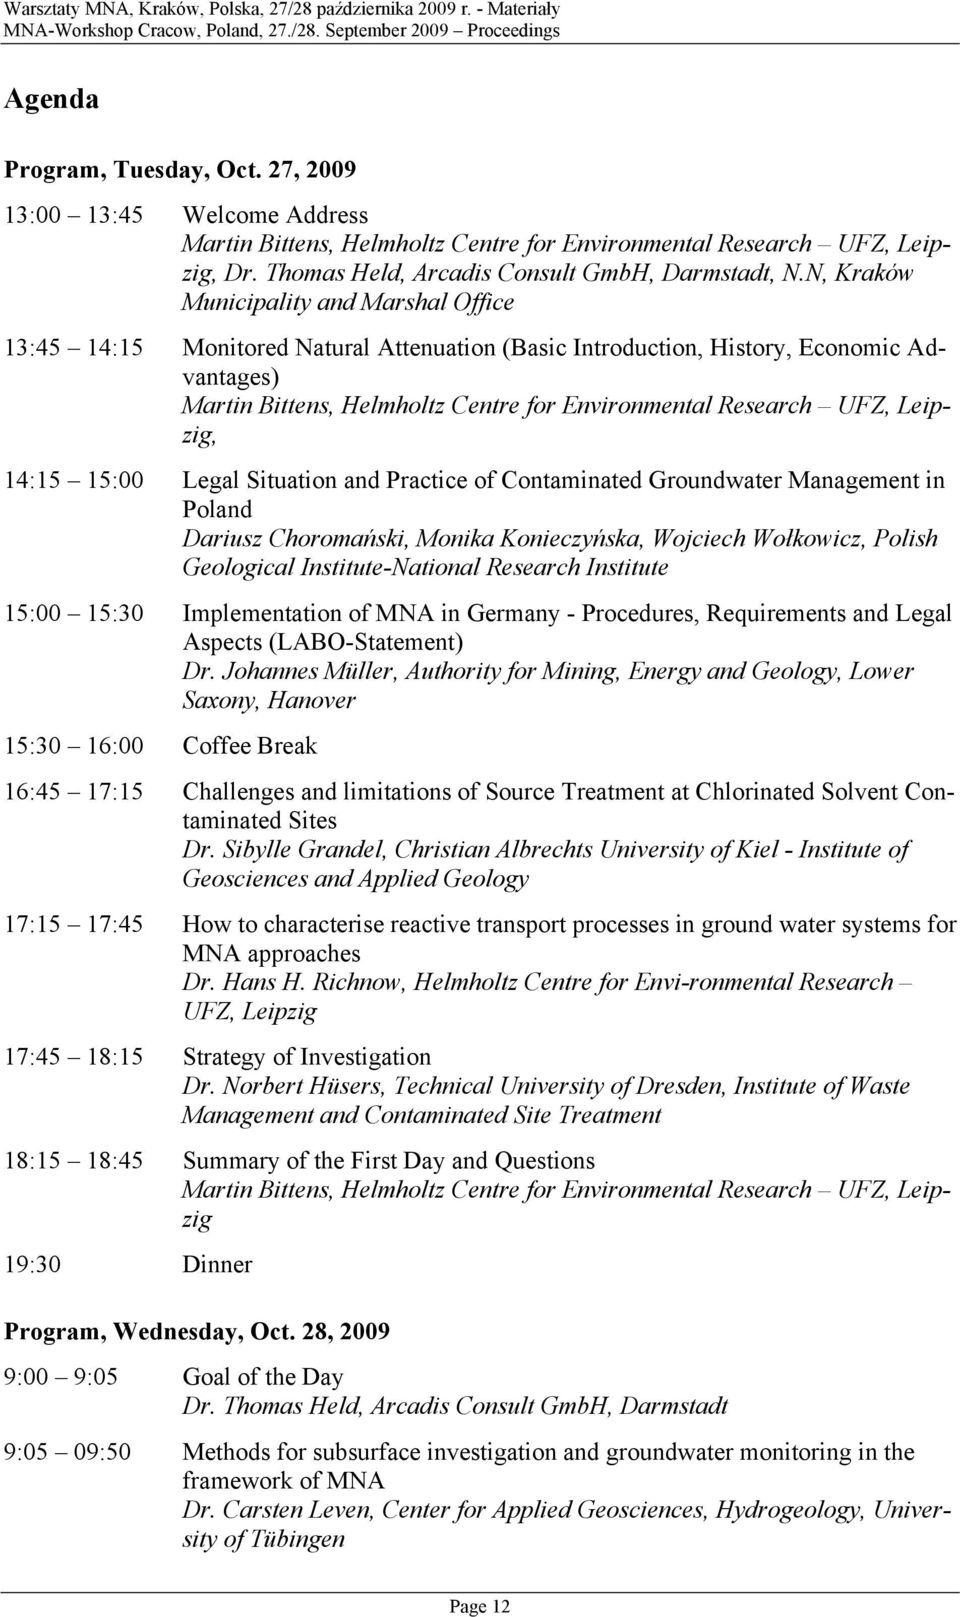 14:15 15:00 Legal Situatin and Practice f Cntaminated Grundwater Management in Pland Dariusz Chrmański, Mnika Knieczyńska, Wjciech Włkwicz, Plish Gelgical Institute-Natinal Research Institute 15:00